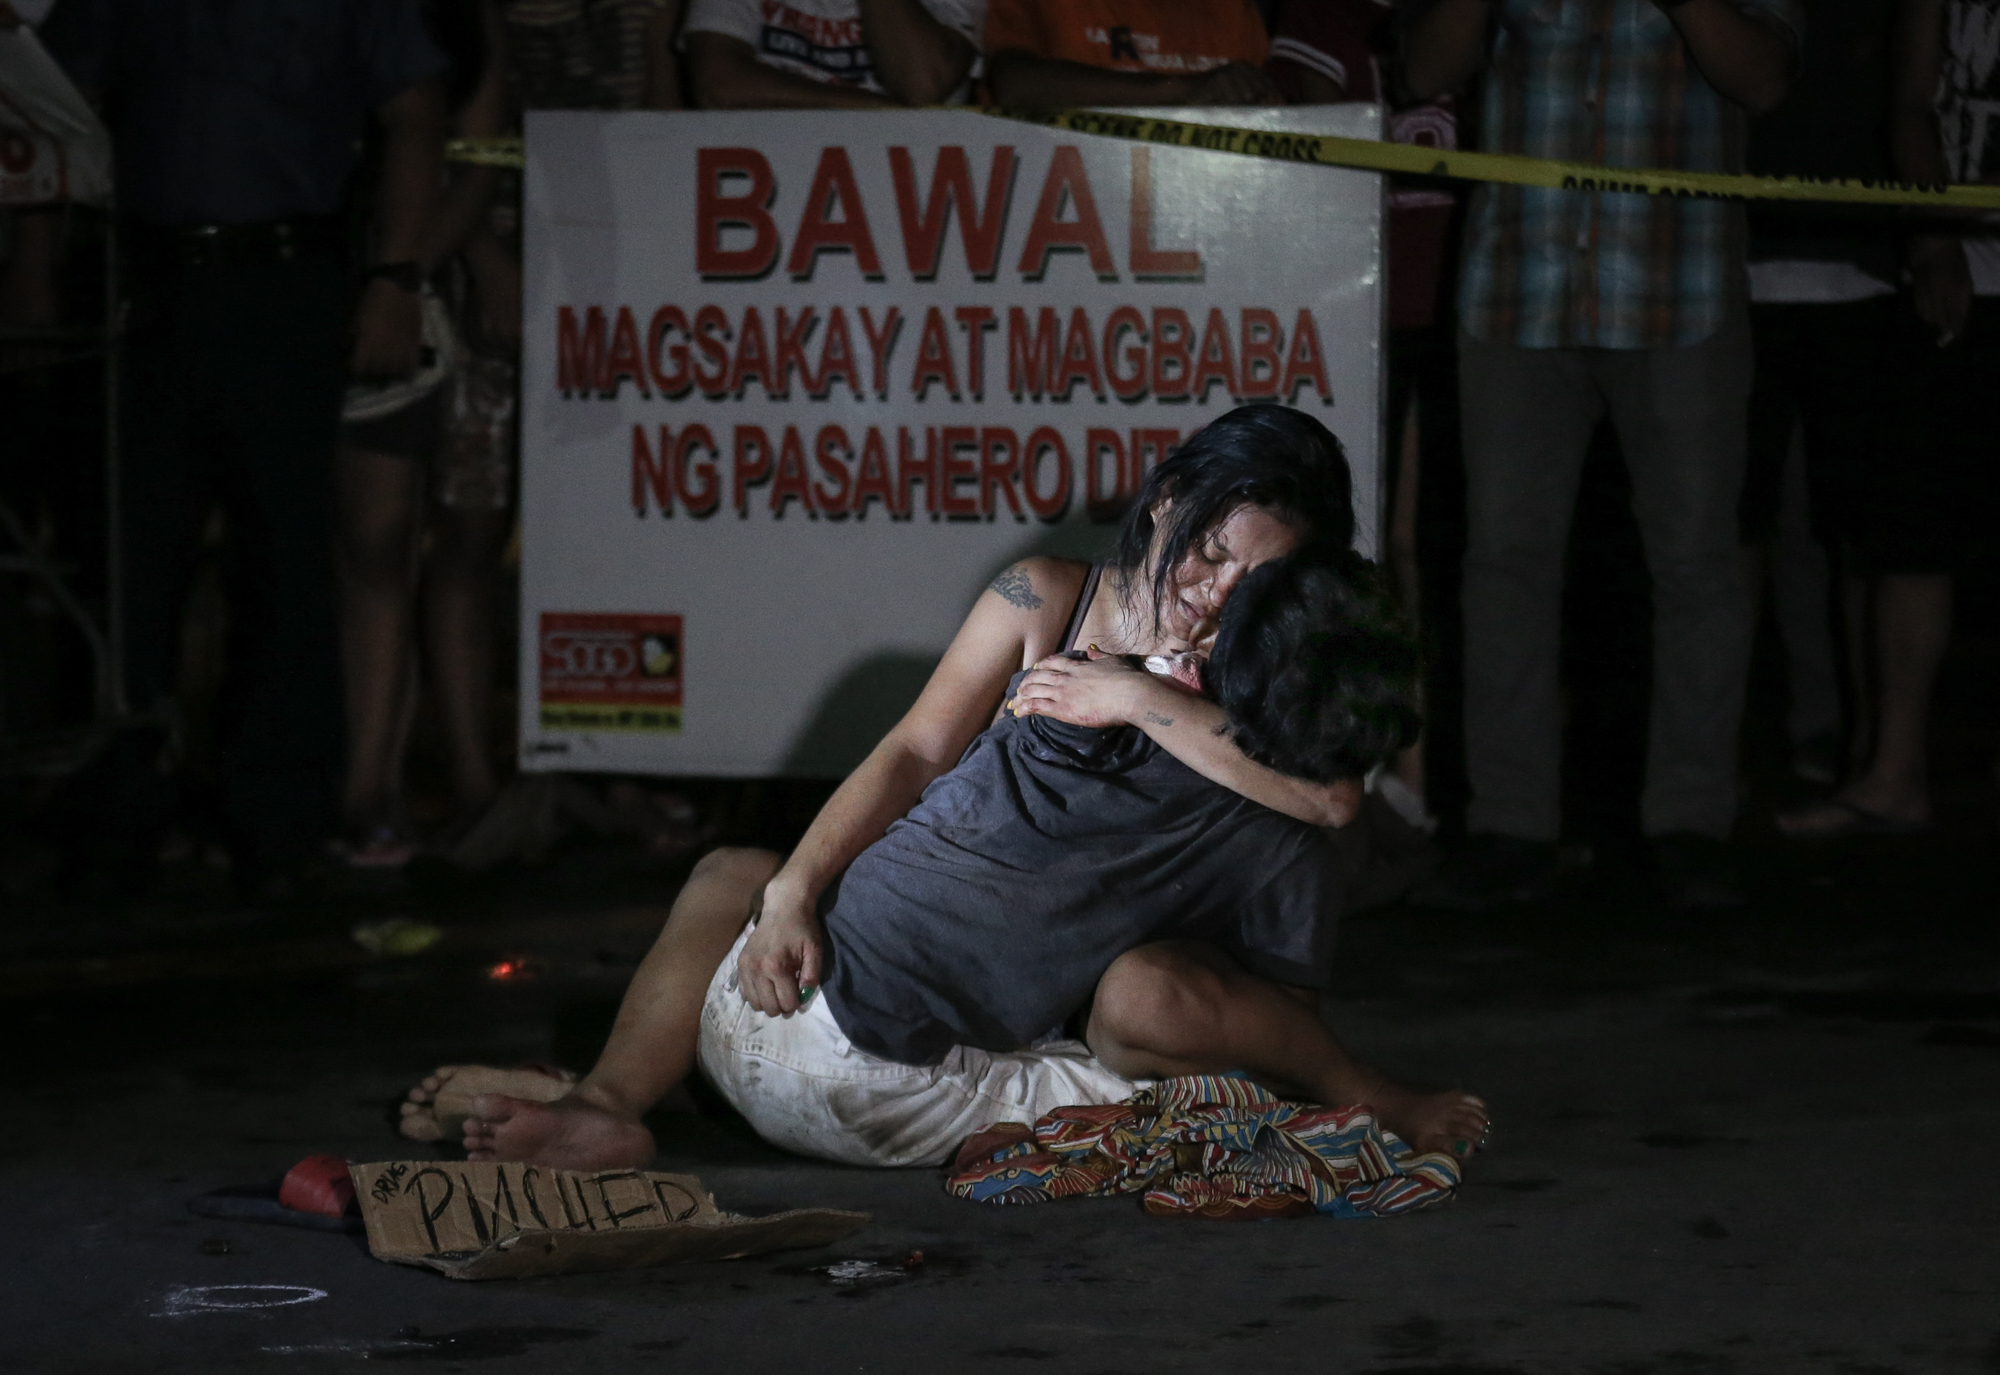 """Jennilyn Olayres holds her partner Michael Siaron, 30, a pedicab driver, who was shot and killed by unidentified riding in tandem suspects along LRT Pasay Rotonda, Edsa on July 23, 2016. A placard was left beside the victim's body with words, """"Pusher ako, wag tularan."""" (I'm a pusher, do not copy me.)"""